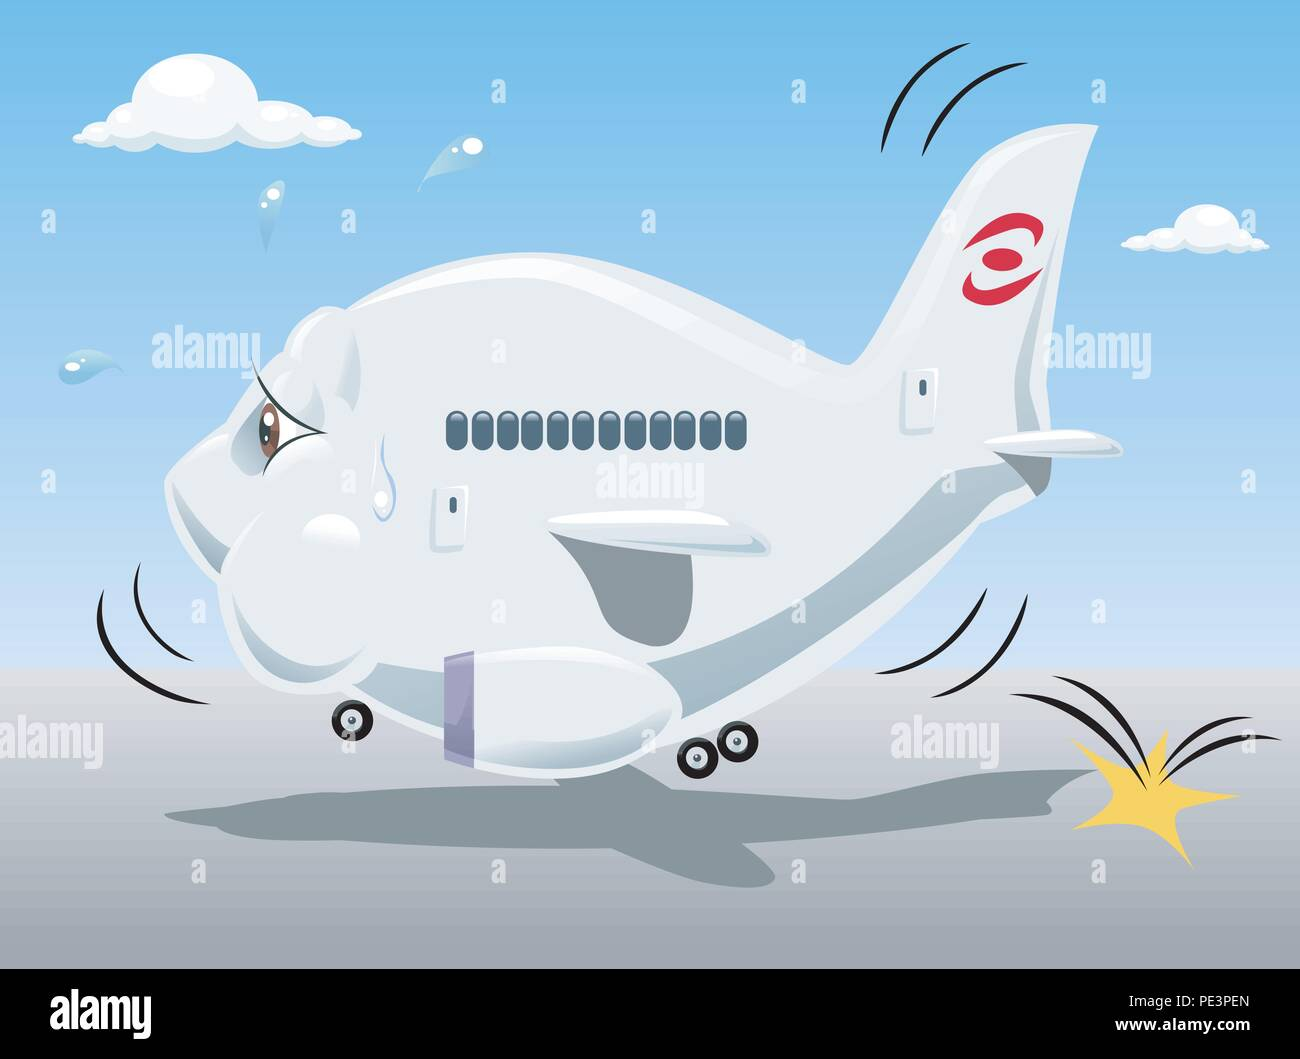 Vector illustration of a tired bouncing airplane, representing economic crisis of many air transportation companies. Cartoon style - Stock Vector